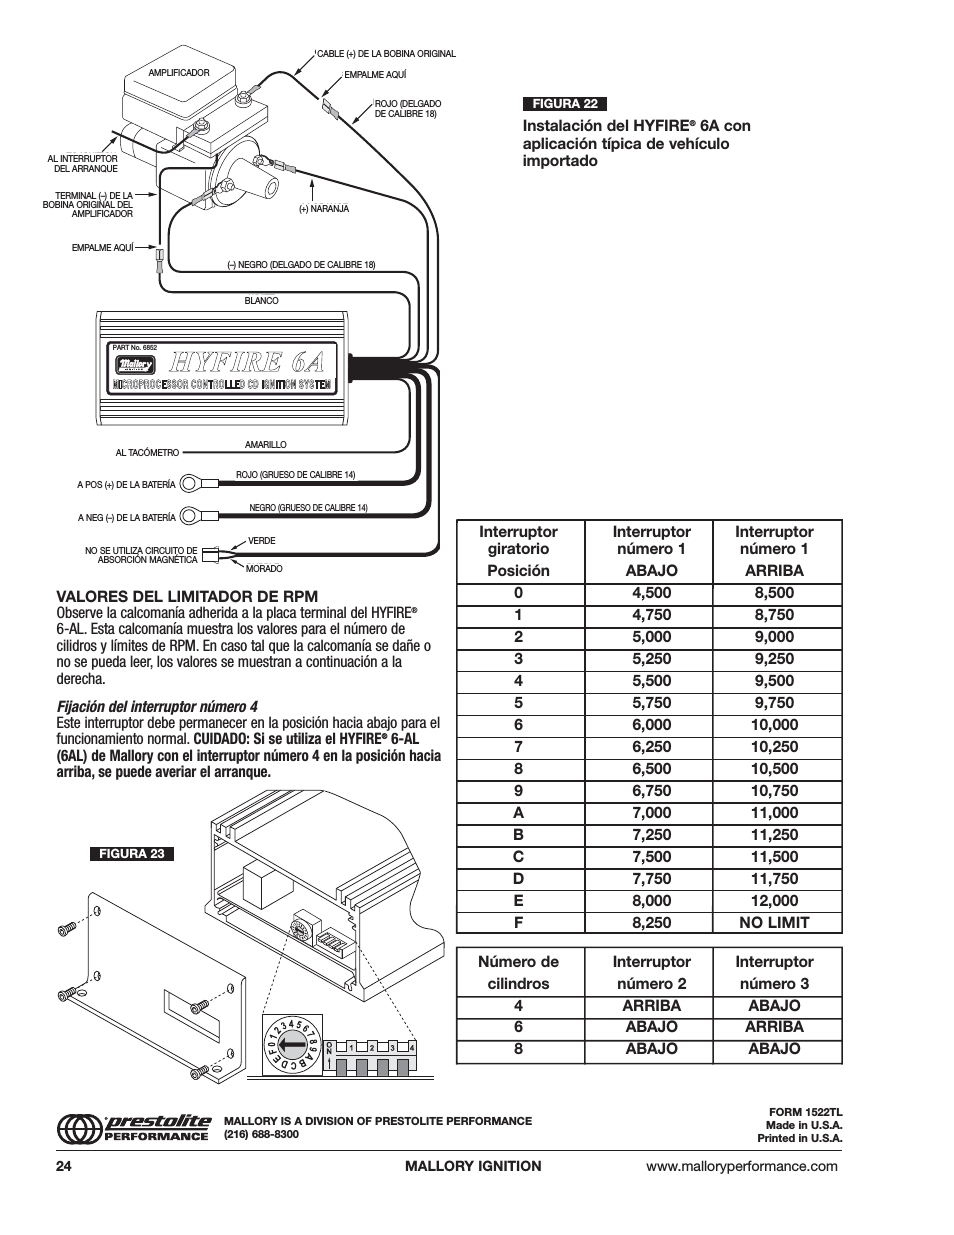 hight resolution of mallory ignition wiring diagram hhy yf fiir re e 6 6a a 5n